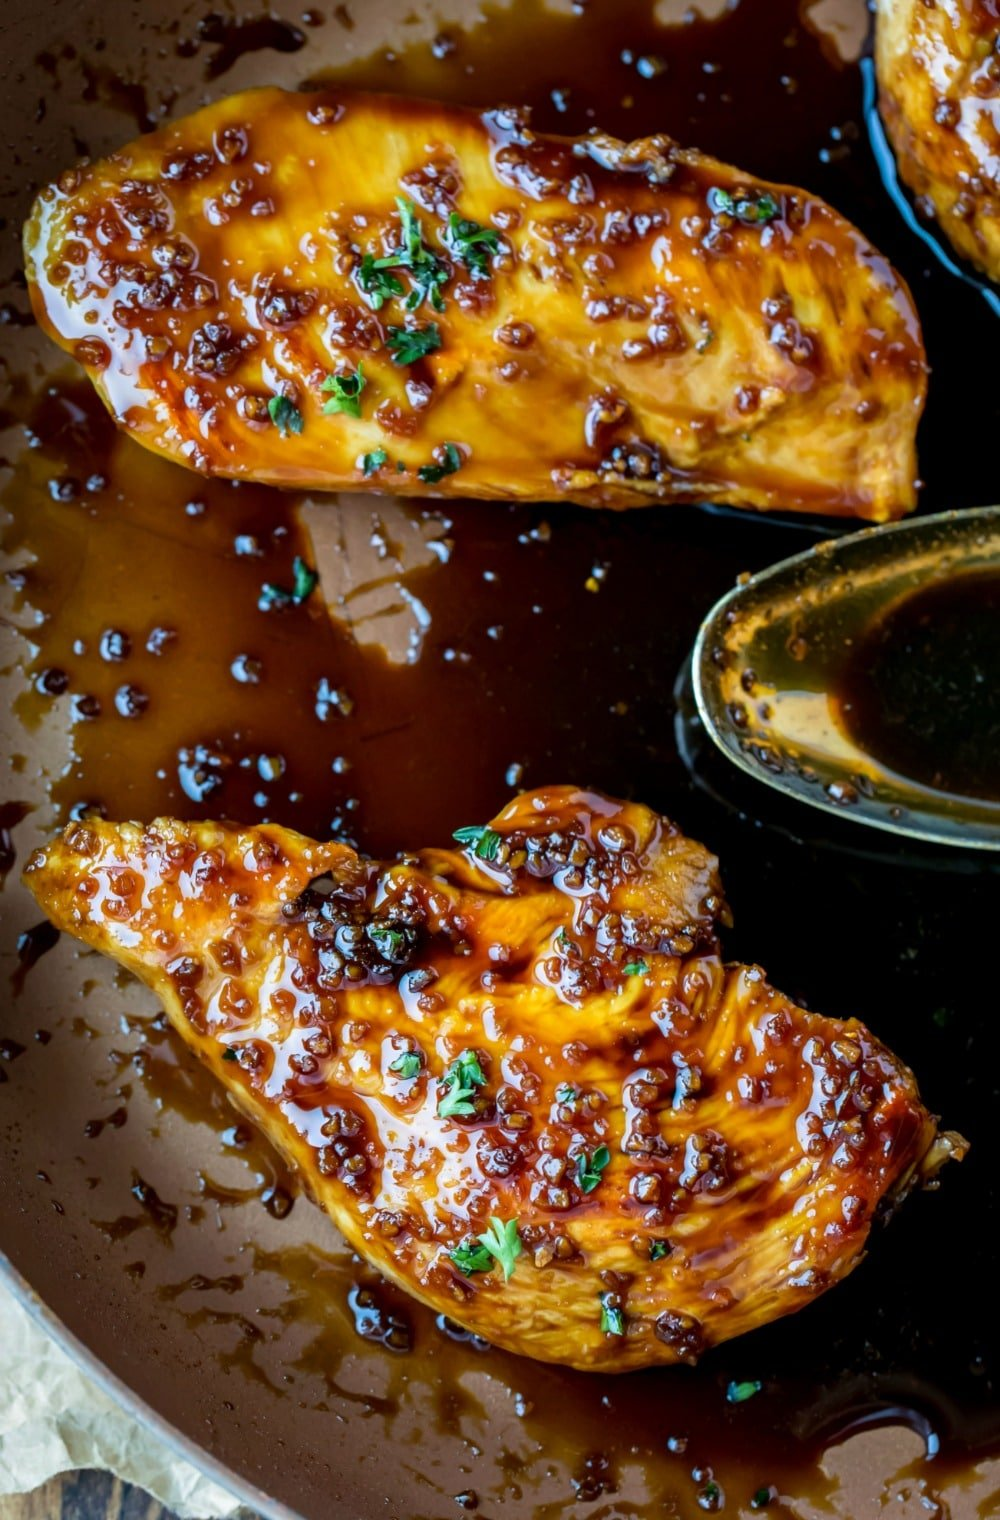 Two pieces of Honey Garlic Chicken in a skillet with sauce